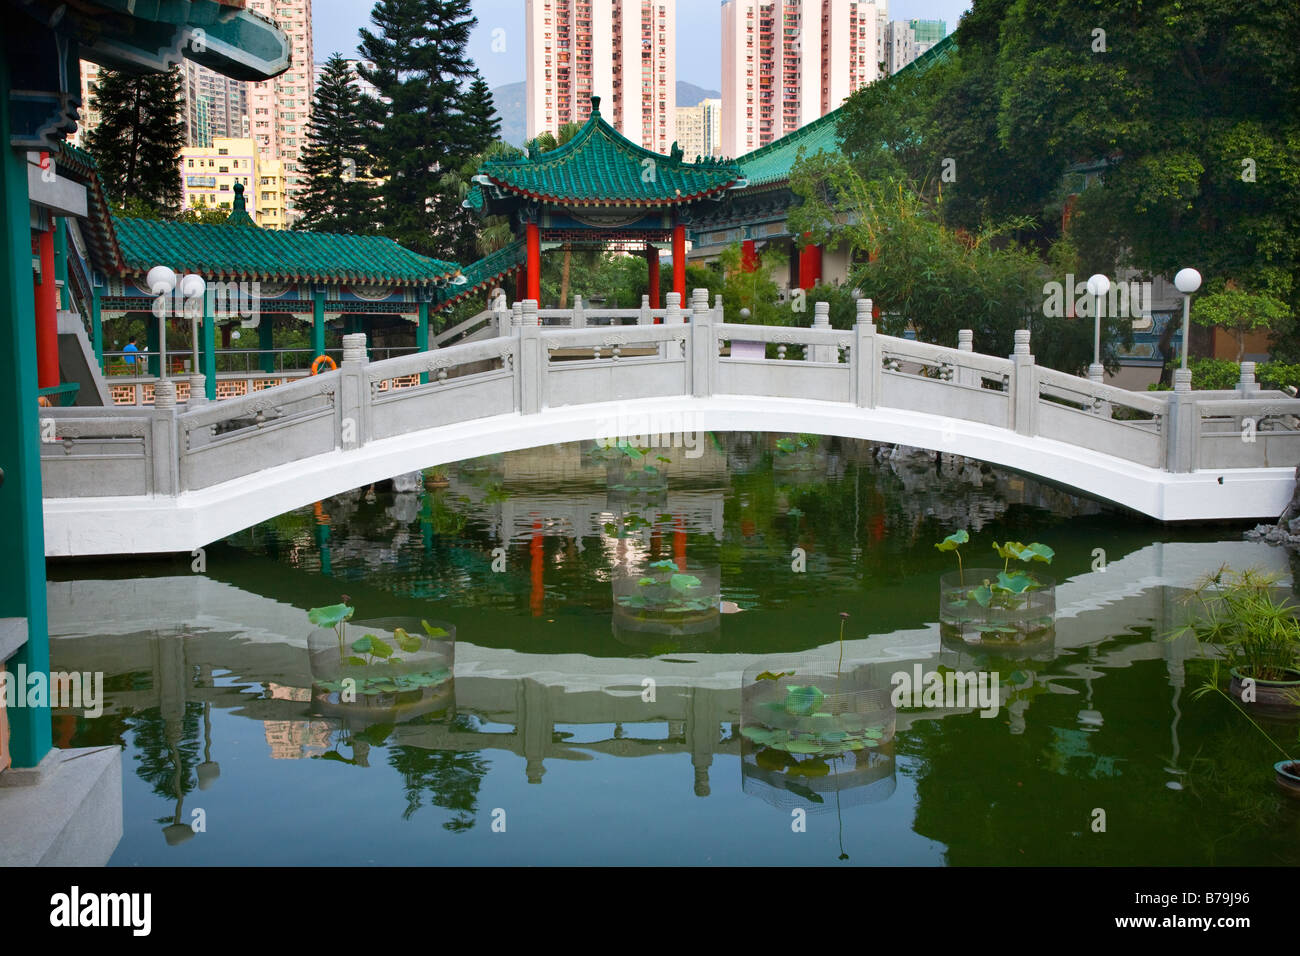 Chinese Water Garden Bridge and Reflection Amid Modern High Rise ...